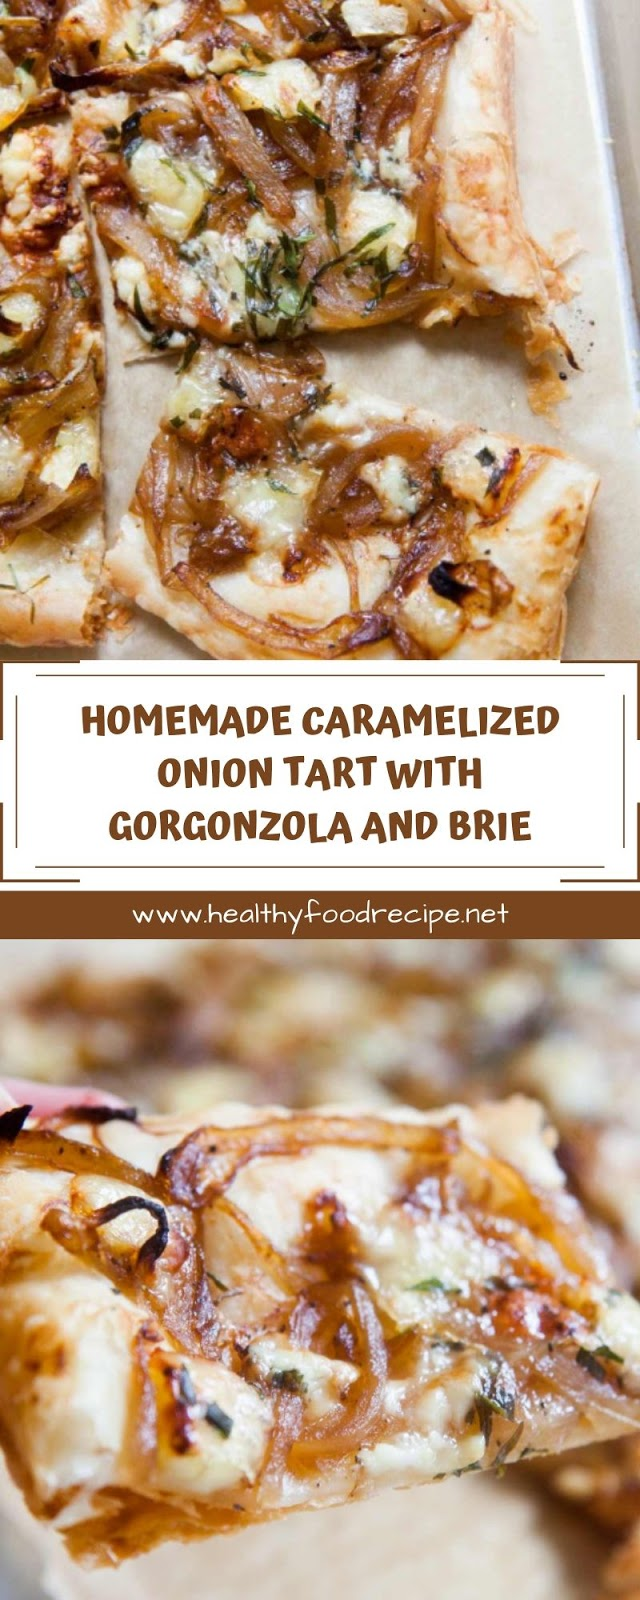 HOMEMADE CARAMELIZED ONION TART WITH GORGONZOLA AND BRIE